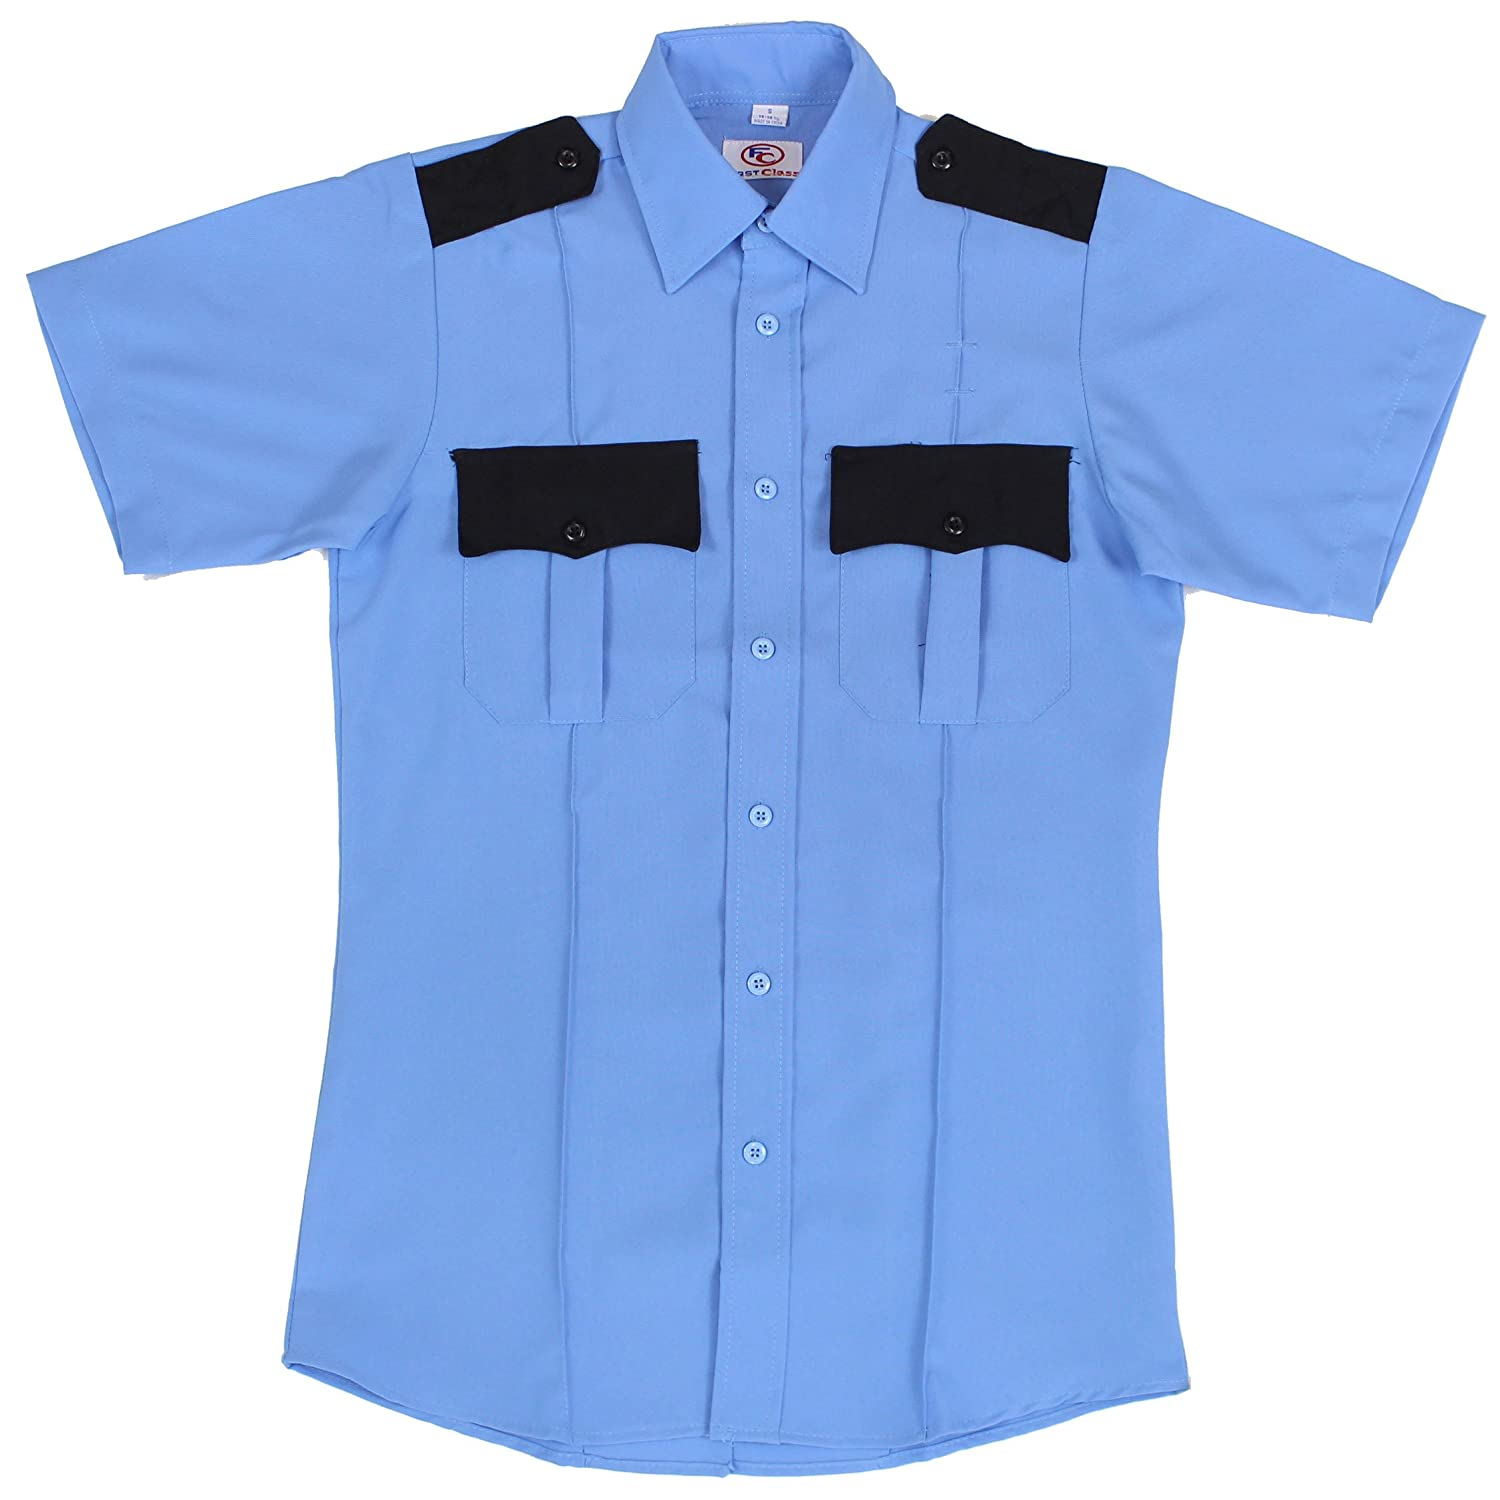 First Class 100% Polyester Two Tone Short Sleeve Men's Uniform Shirt